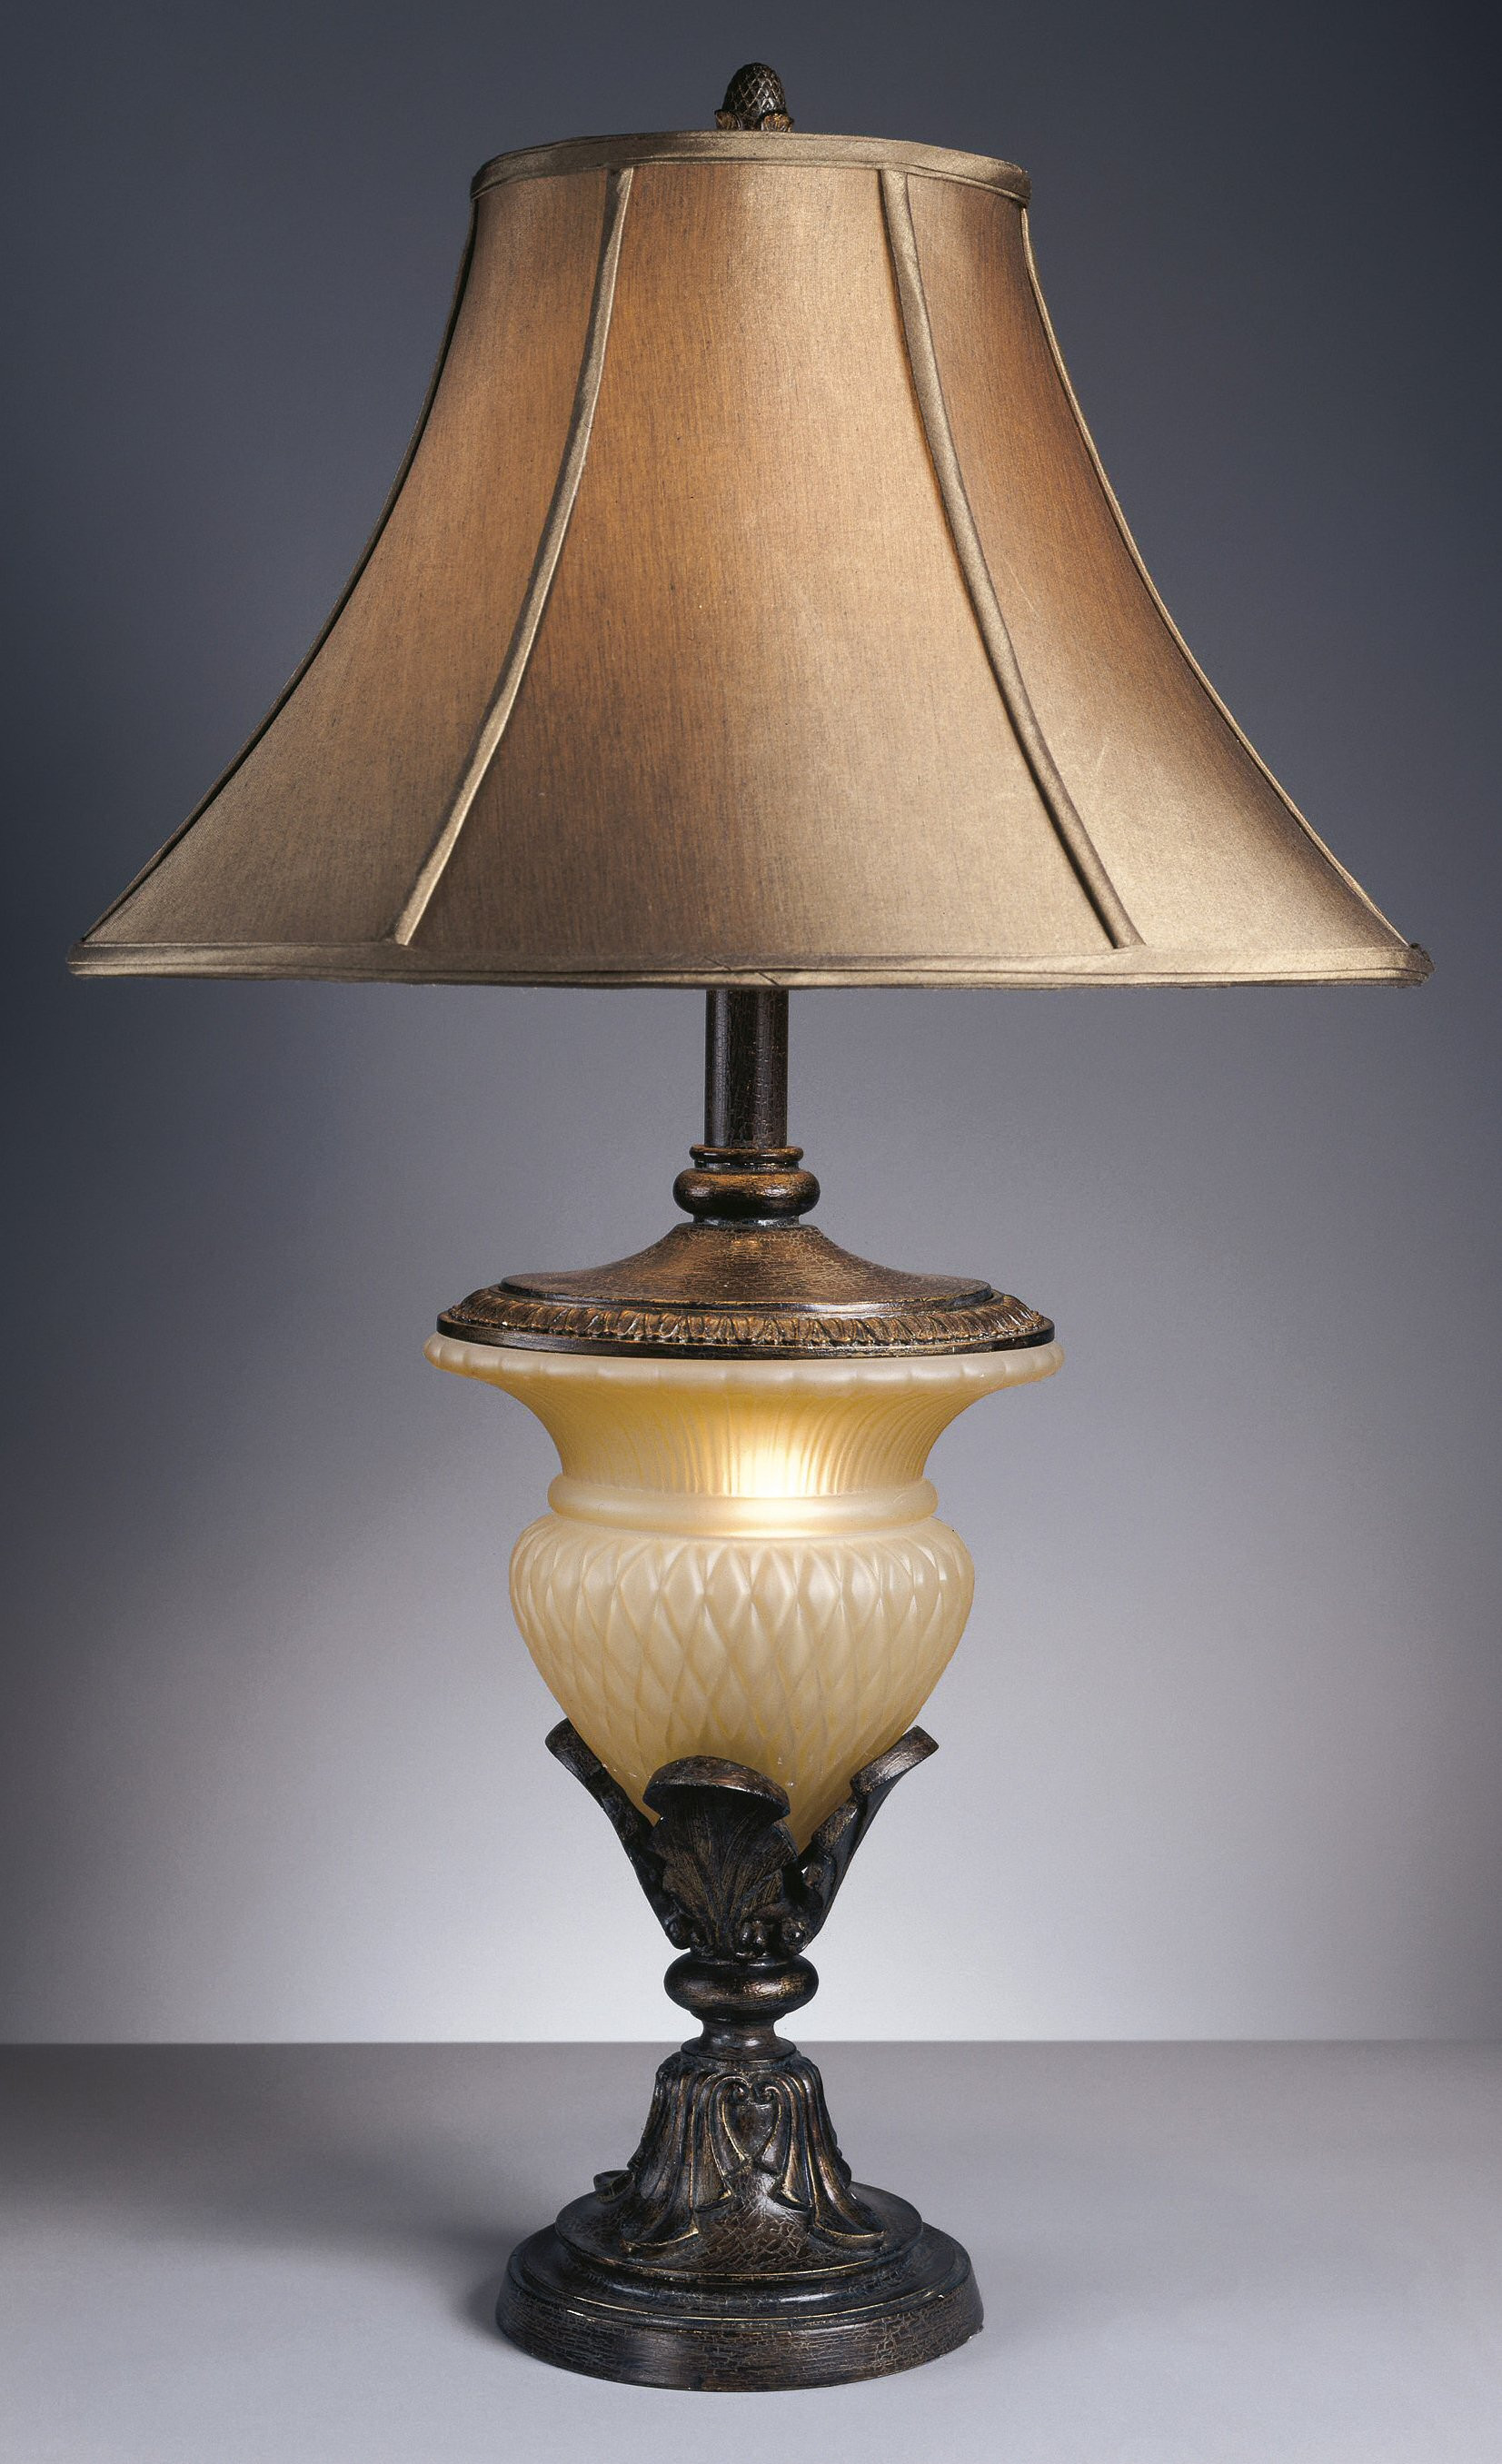 Best ideas about Best Desk Lamps . Save or Pin Best table lamps 10 Lamps To Enlighten Your Life Now.